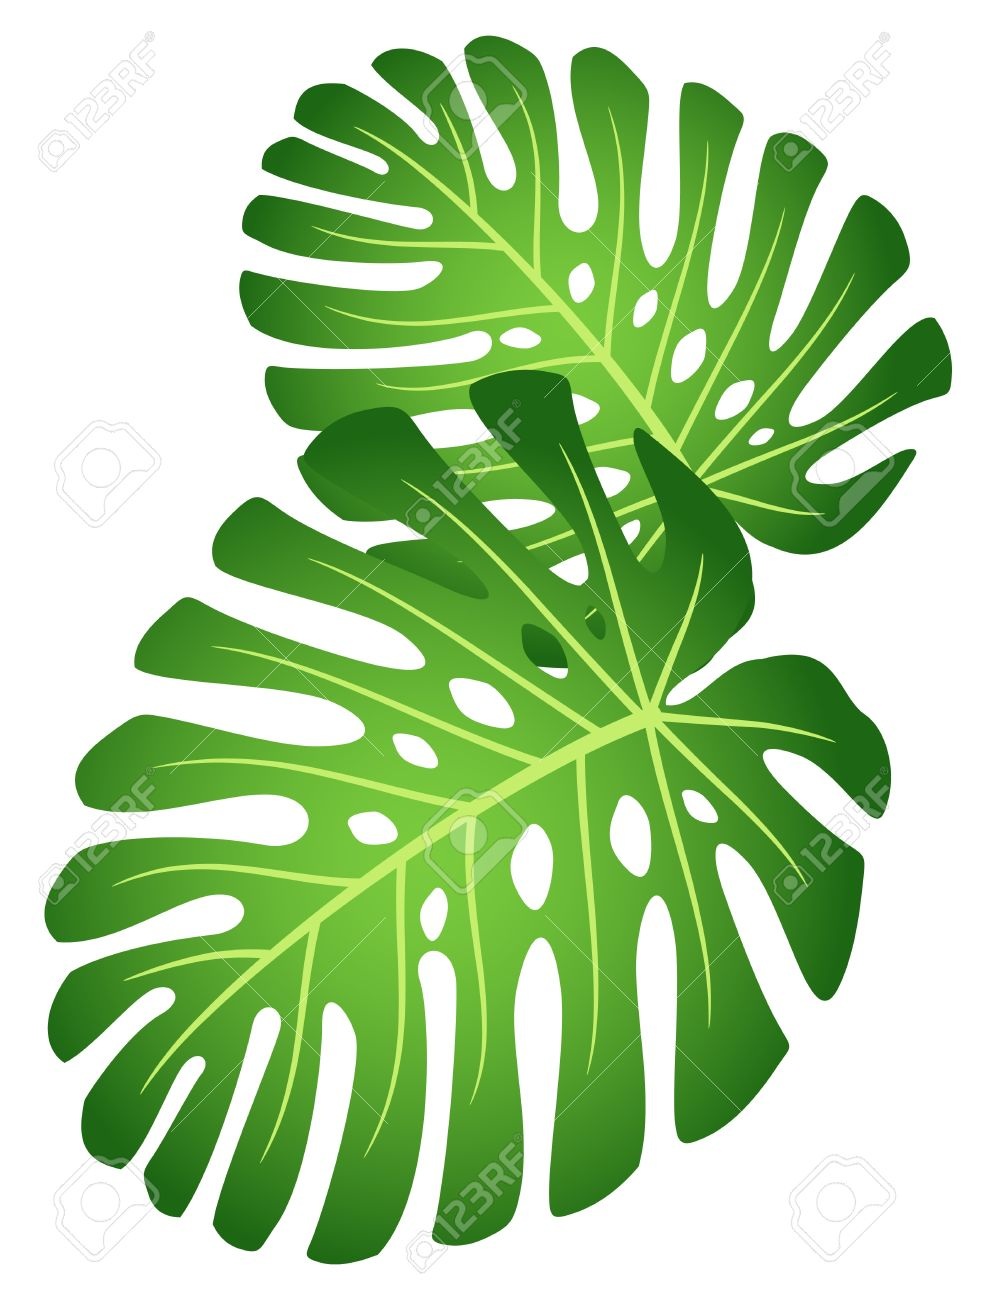 Leaves of tropical plant - Monstera. Stock Vector - 9466959